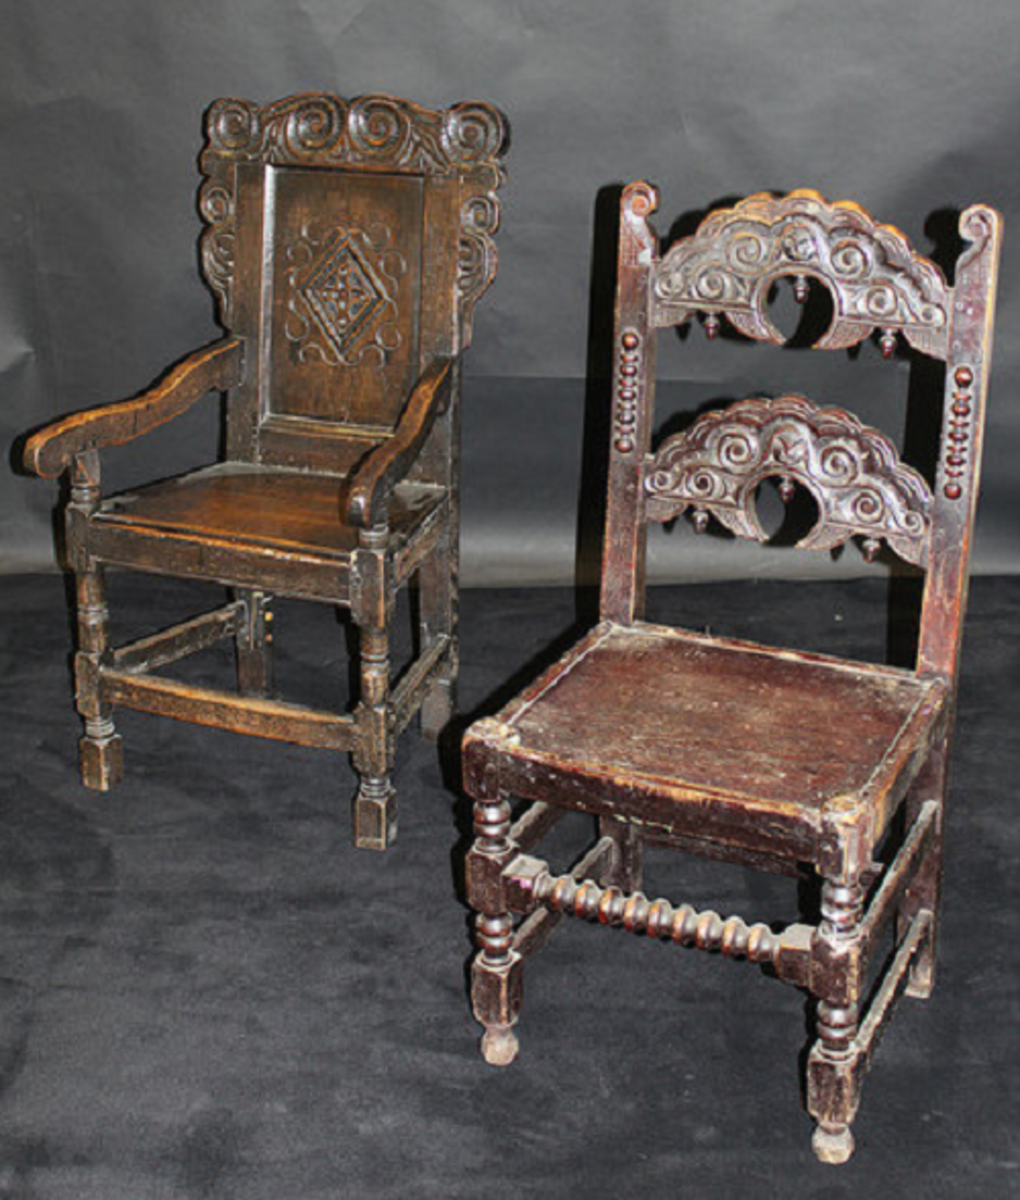 Early American Furniture 17th Century Colonial Era Owlcation